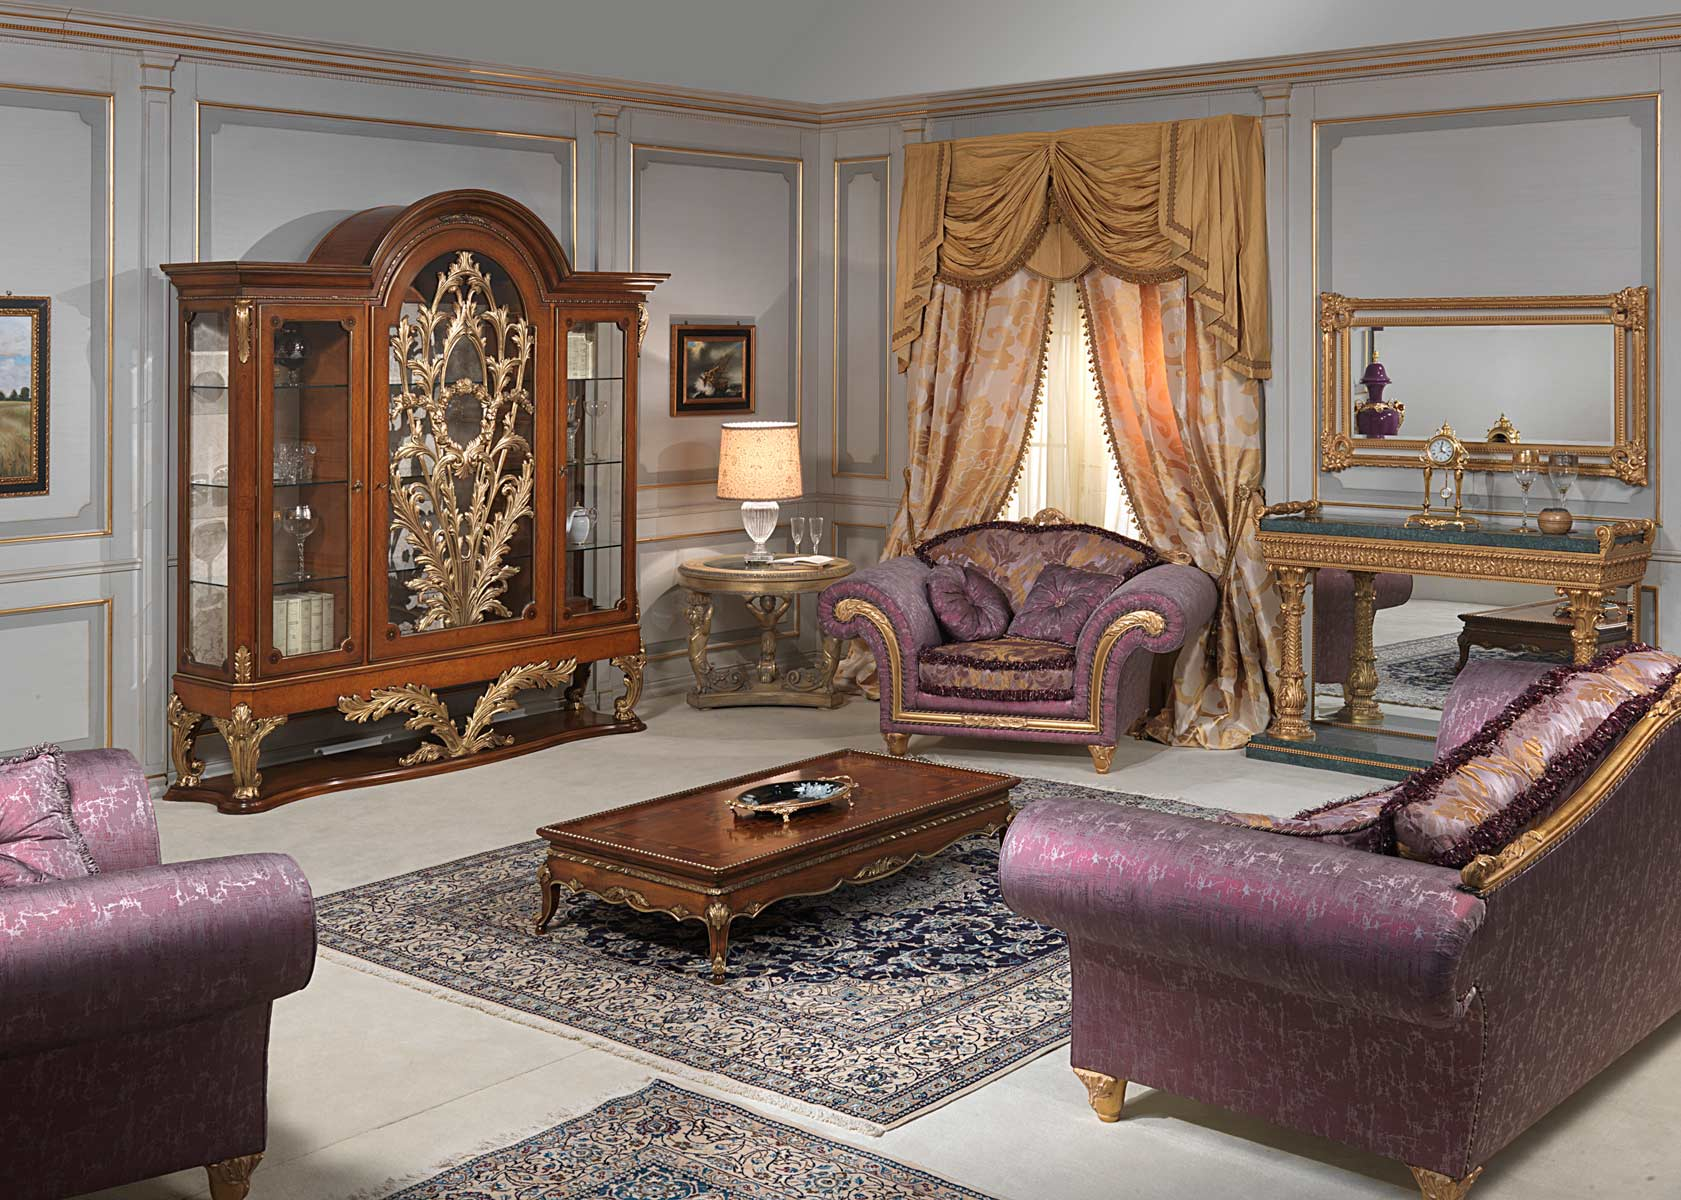 Louis Xvi Style Living Room Glass Showcase Sofa And Armchair Small Table And Console